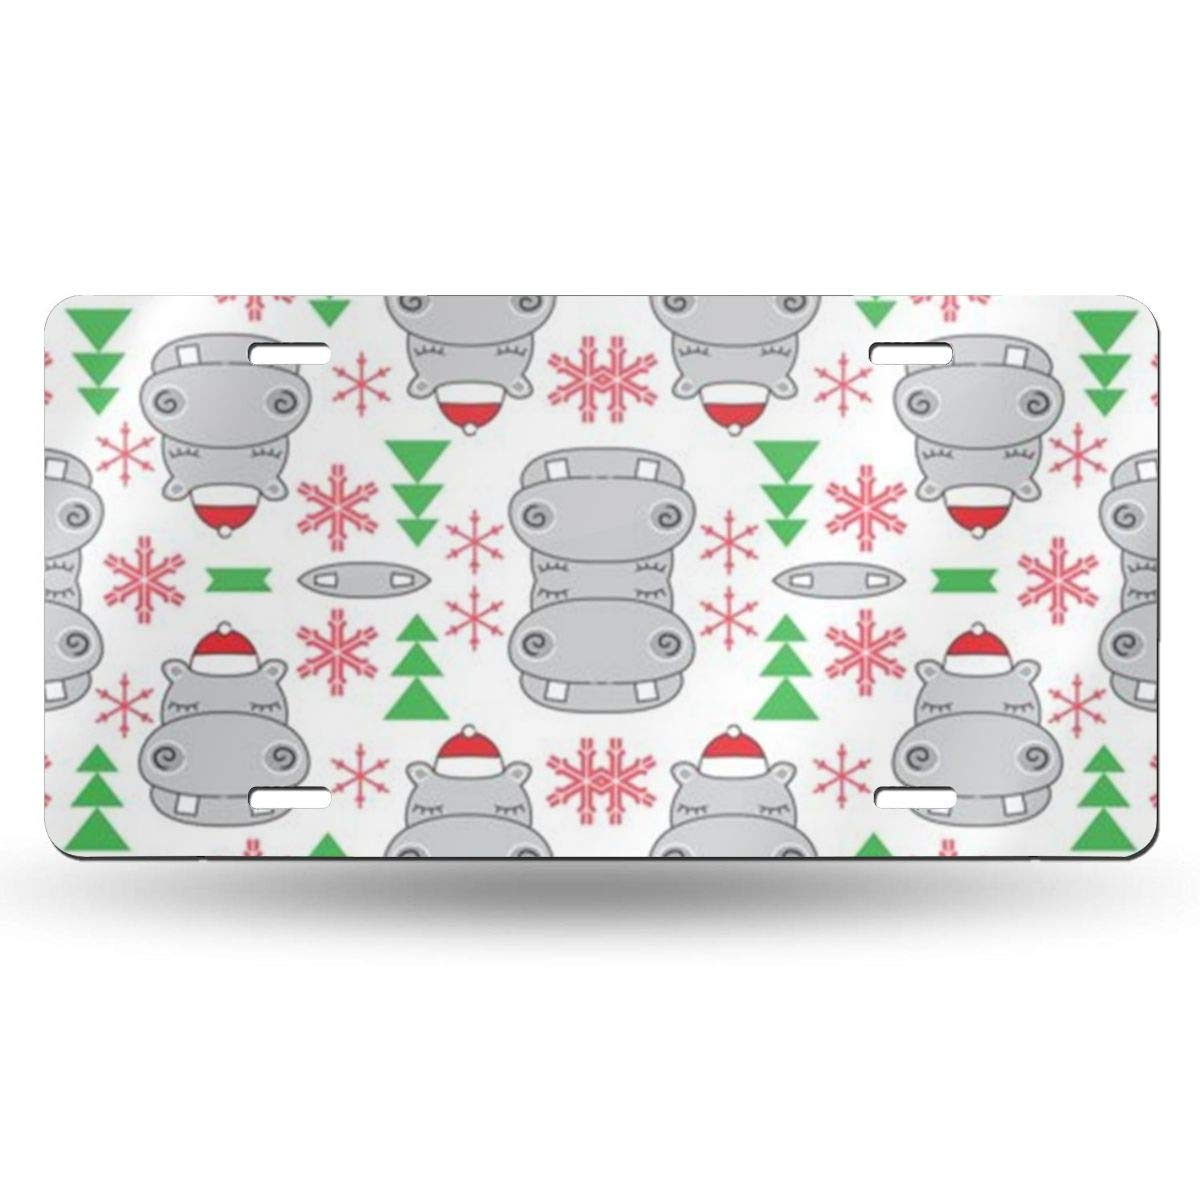 PIOPIEK Christmas Hippos with Santa Hats US License Plate Tag from 50 States in The United States,Customized Unique Printed License Plate,Suitable for All Cars,Used for Room Decoration,Bar Decoration License Plate Covers & Frames Covers